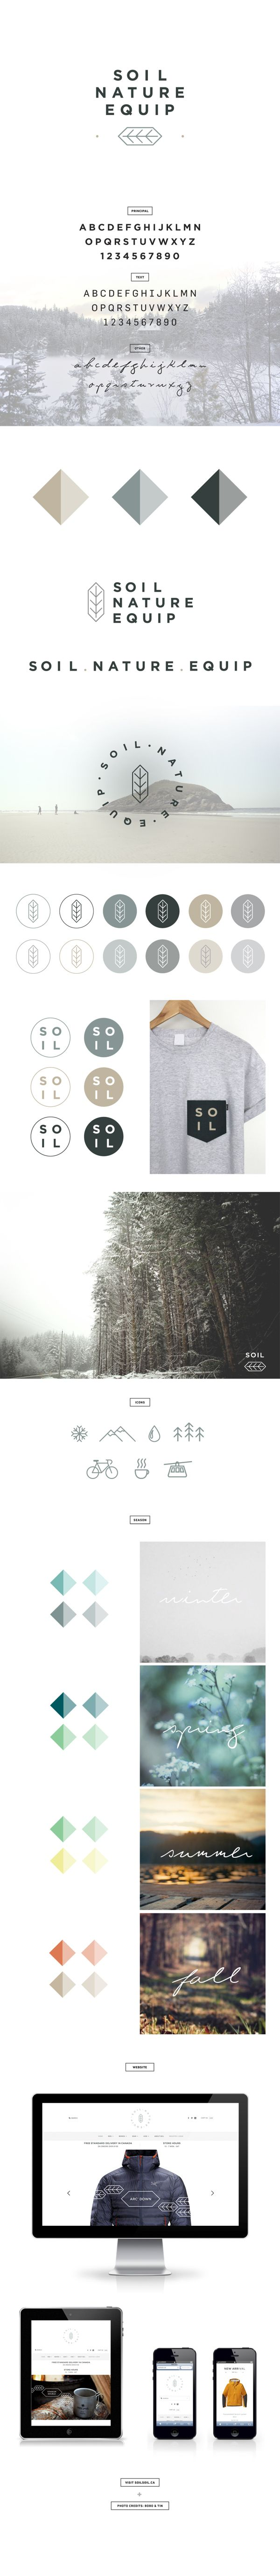 SOIL NATURE EQUIP by Eliane Cadieux, | Look at the rest of the images, great color scheme, typography, all the elements